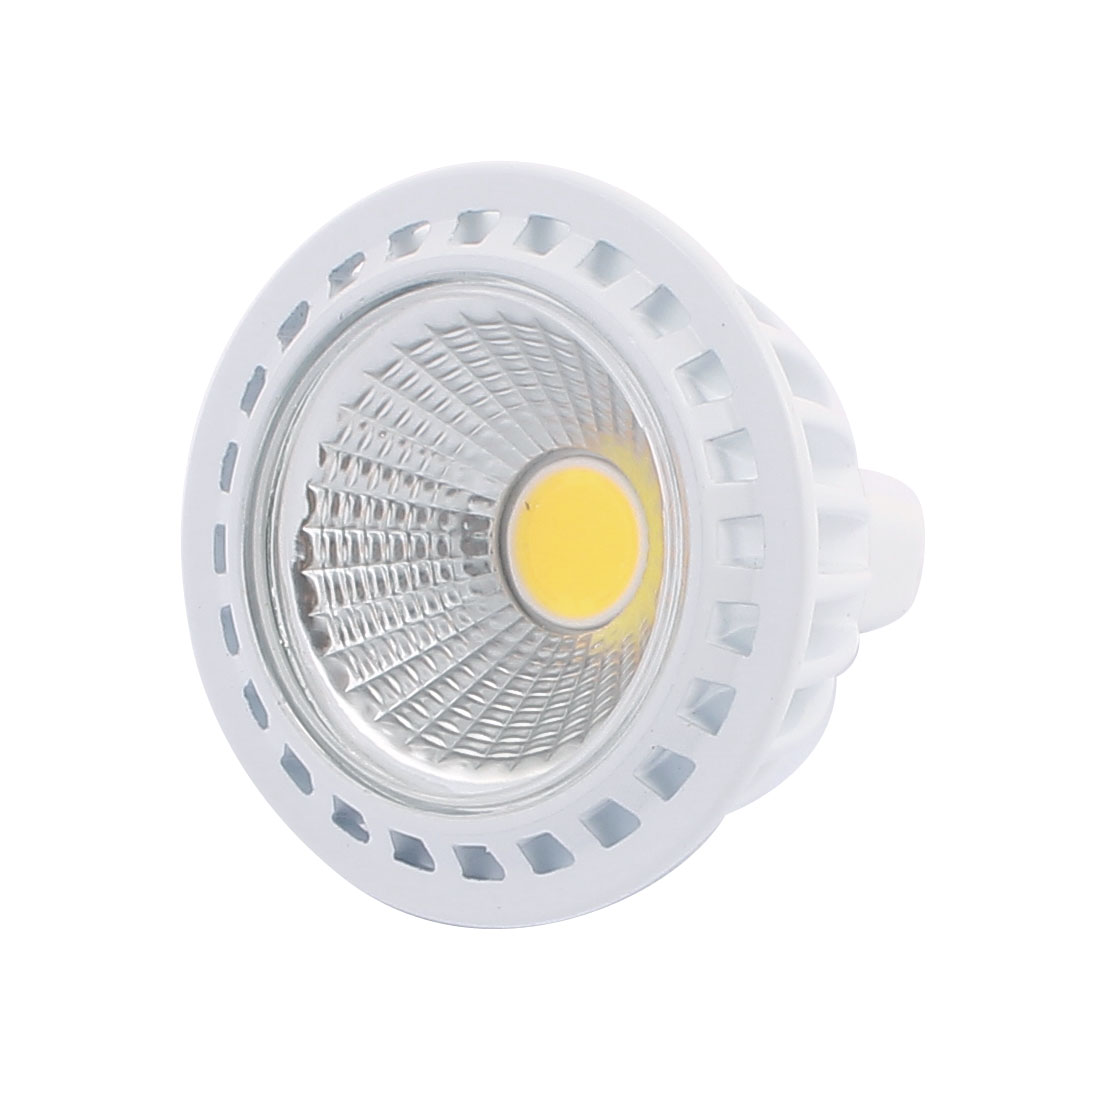 DC12V 5W MR16 COB LED Spotlight Lamp Bulb Practical Downlight Warm White